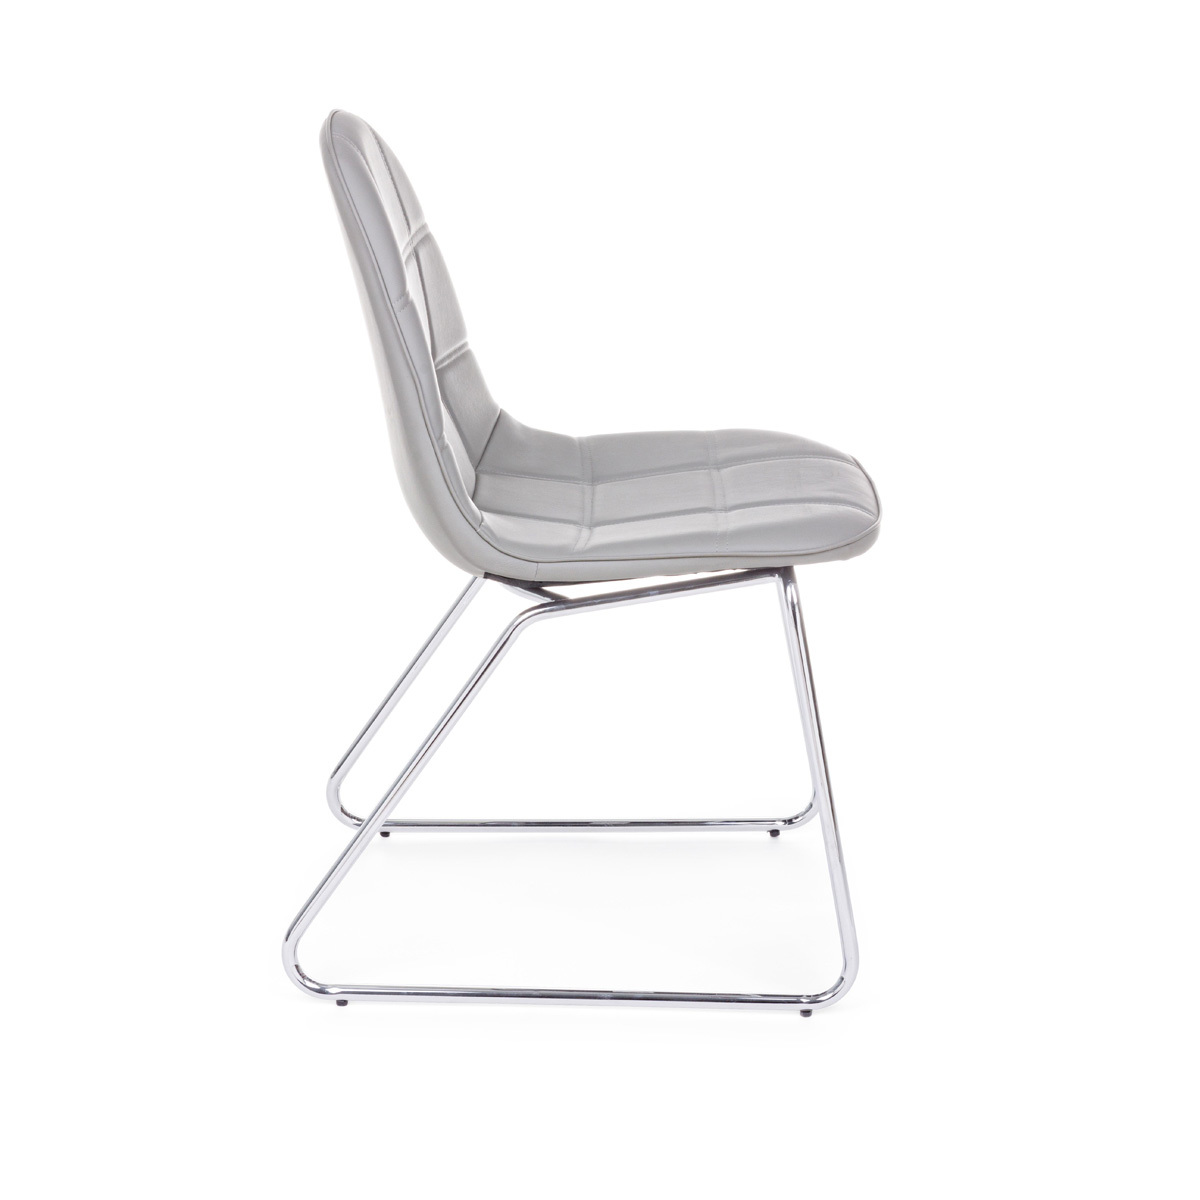 Photos 2: Bizzotto Chair in metal and eco-leather - corda 0731712